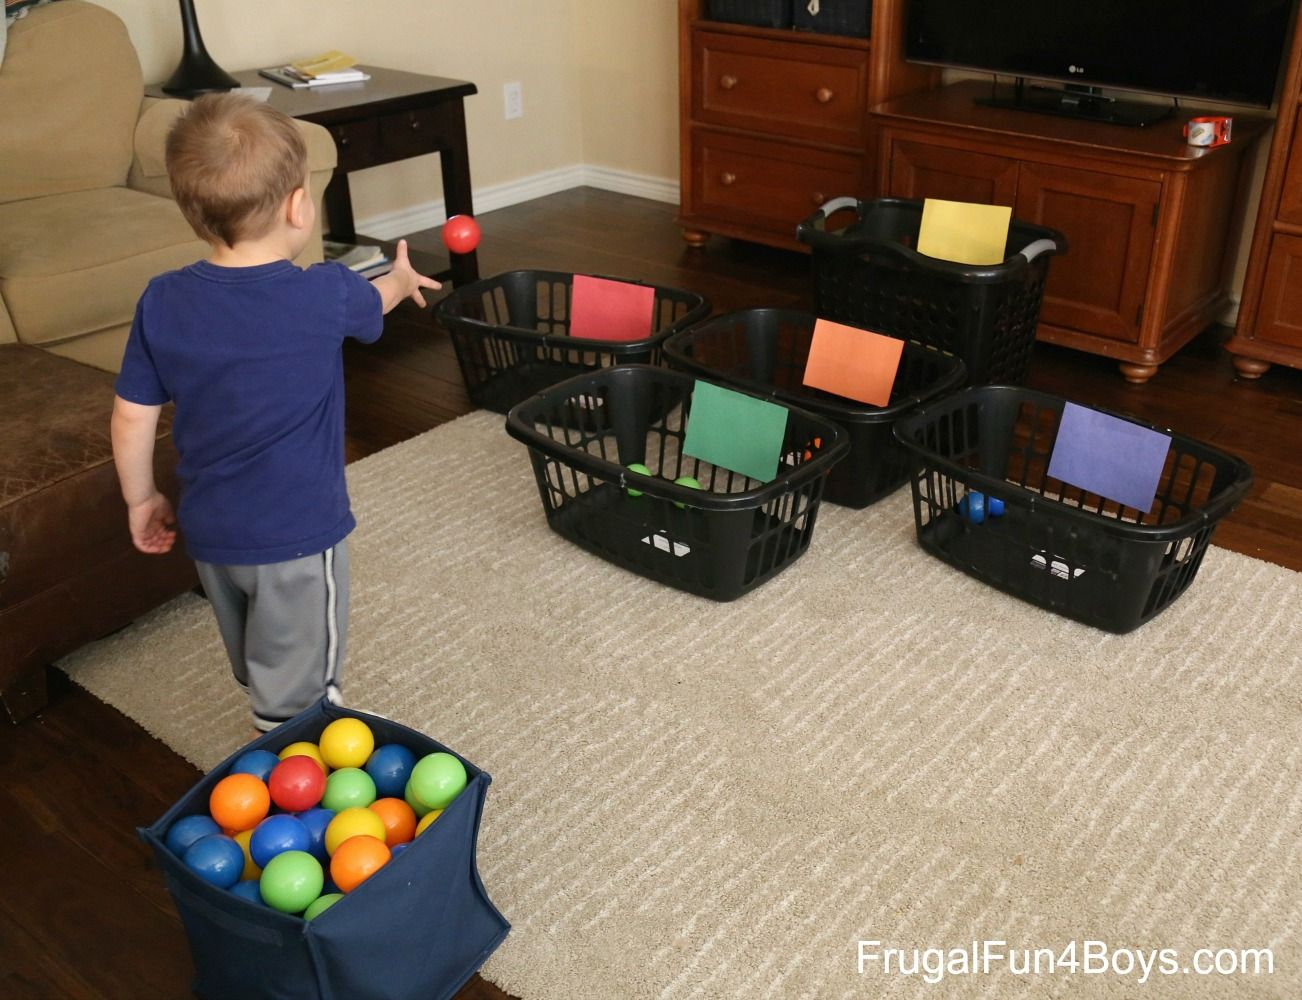 Printable color matching games for preschoolers - 10 Ball Games For Kids Ideas For Active Play Indoors Preschool Colorspreschool